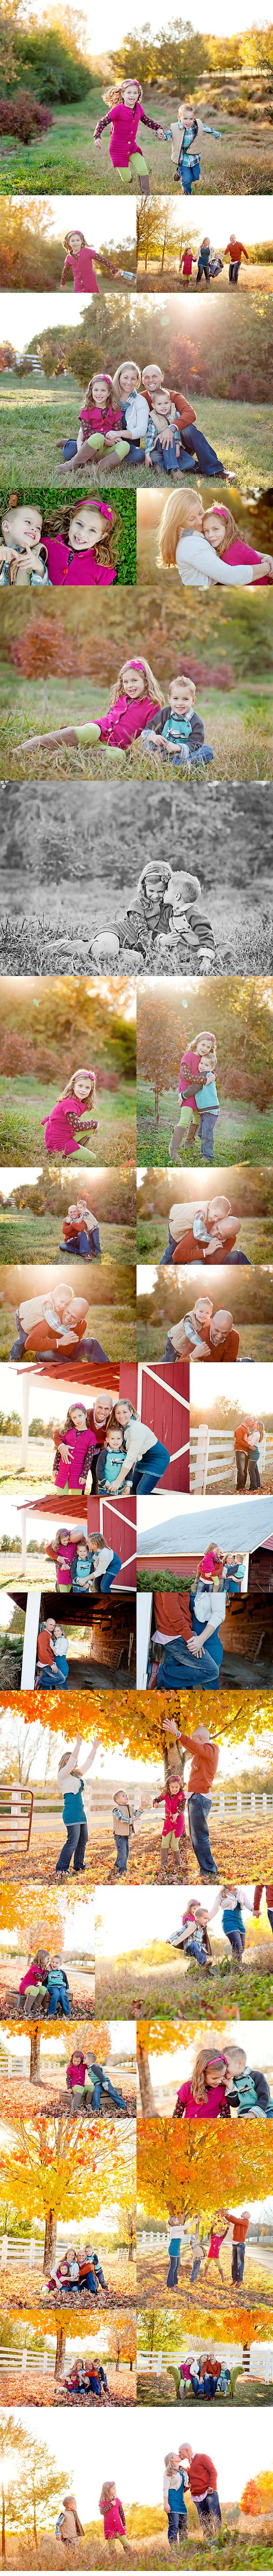 Copyright Jenn Mac Photography - Such a great family series - www.laurabrettphotography.com